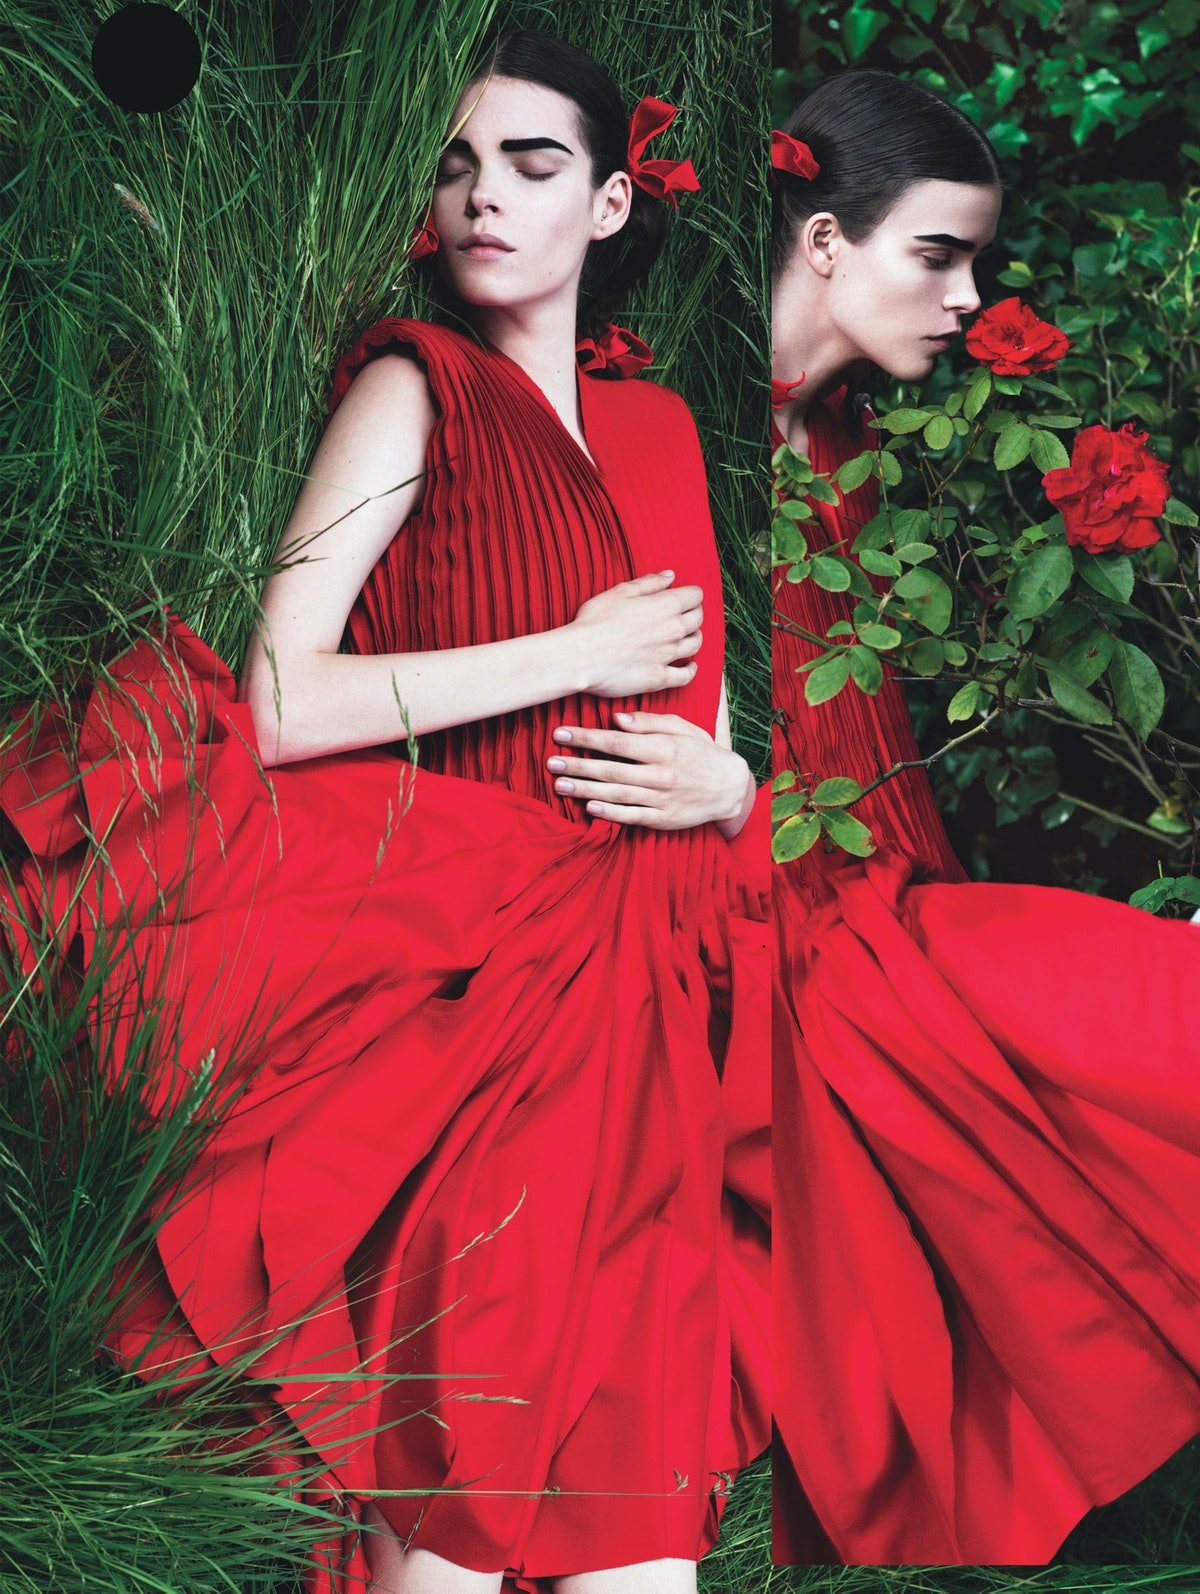 Red and Green Fashion Photography